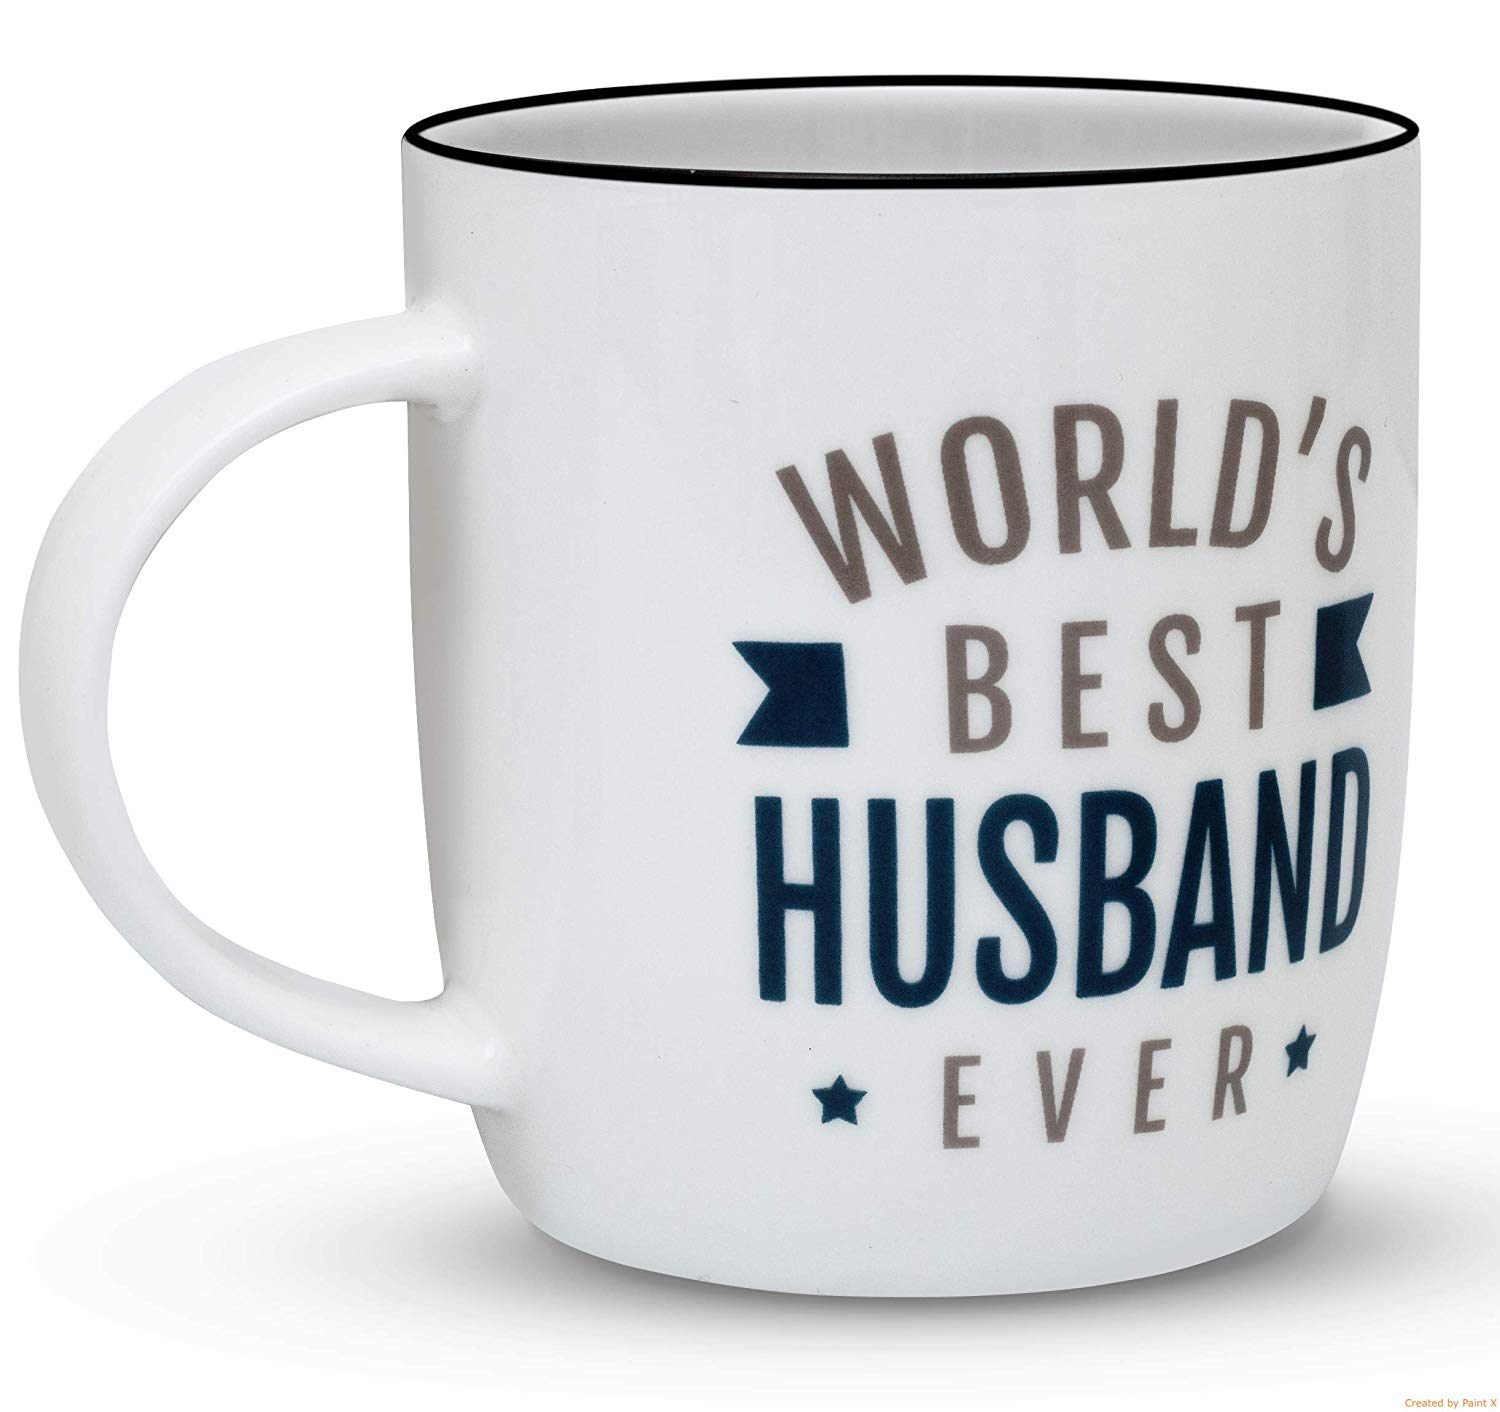 Gifffted Husband Mug, Birthday and Anniversary Gifts For Worlds Best Husband Ever, Funny Fathers Day Gifts For Men, 13 Ounce Coffee Mug, Ceramic Cup